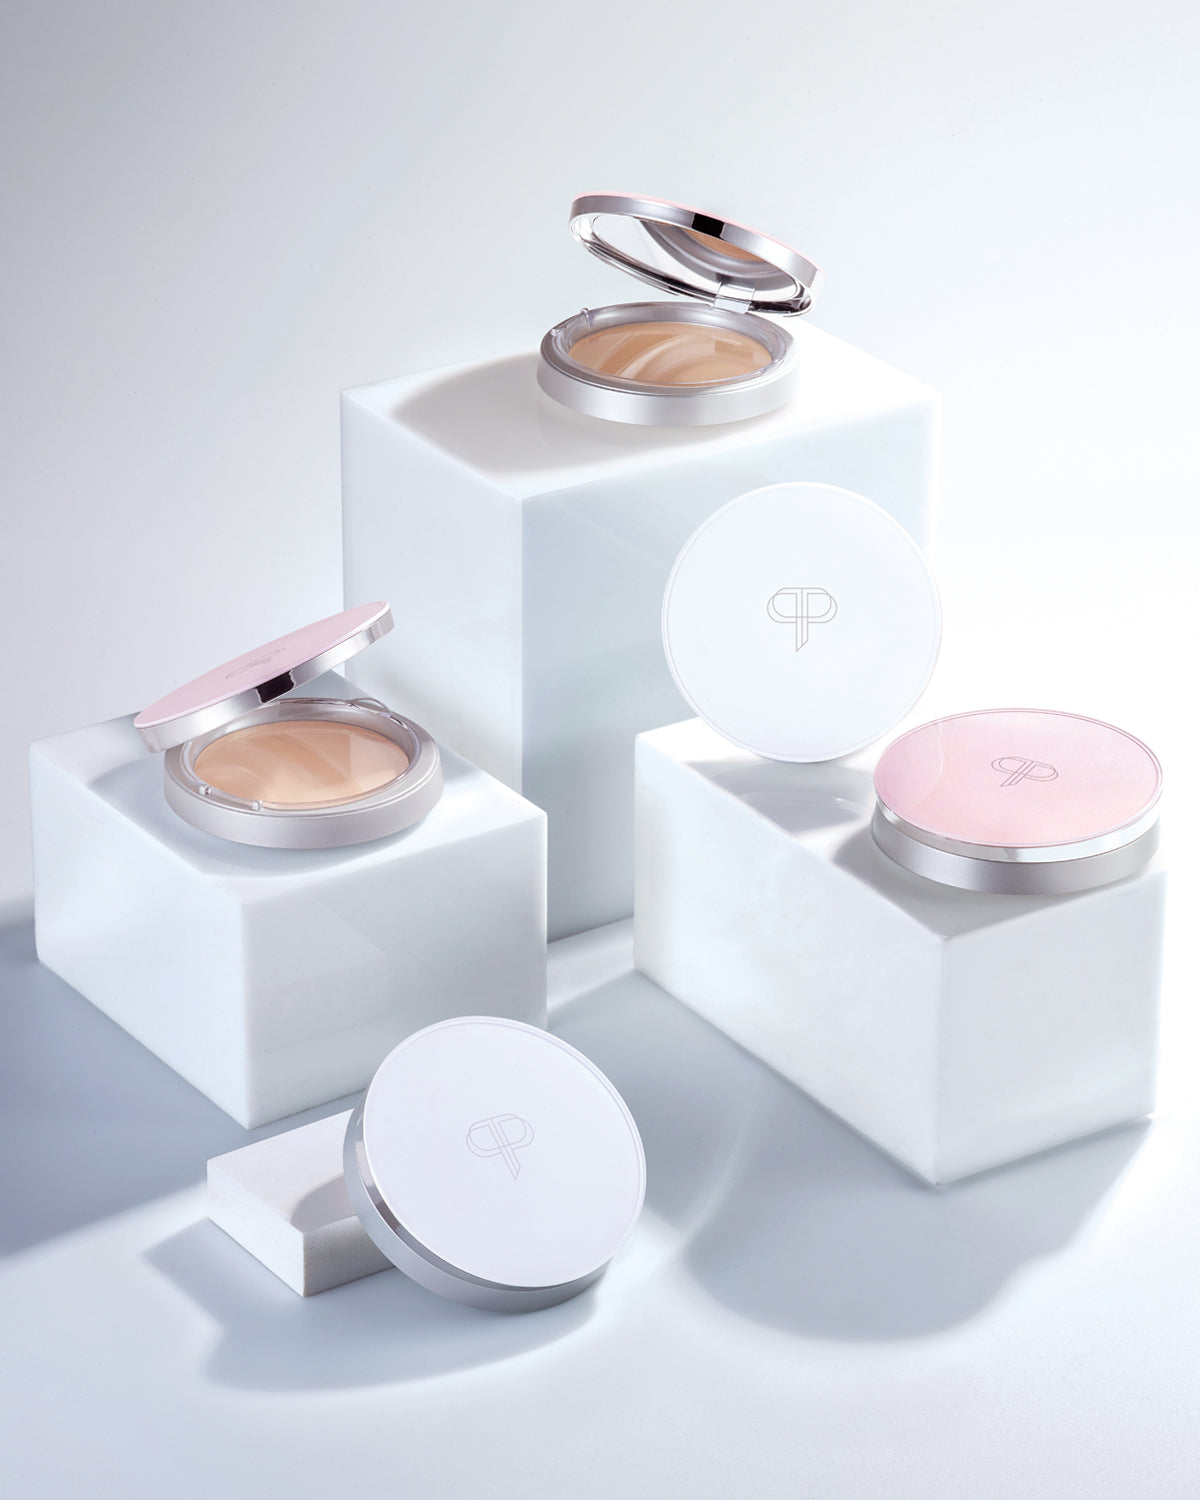 Oil-Control Pressed Powder Pact  This lightweight pressed powder pact helps blot excess oil, blurs away imperfection, and refines the appearance of the skin. Enriched with micro-fine pigments to leave your complexion looking flawless and matte all day long.